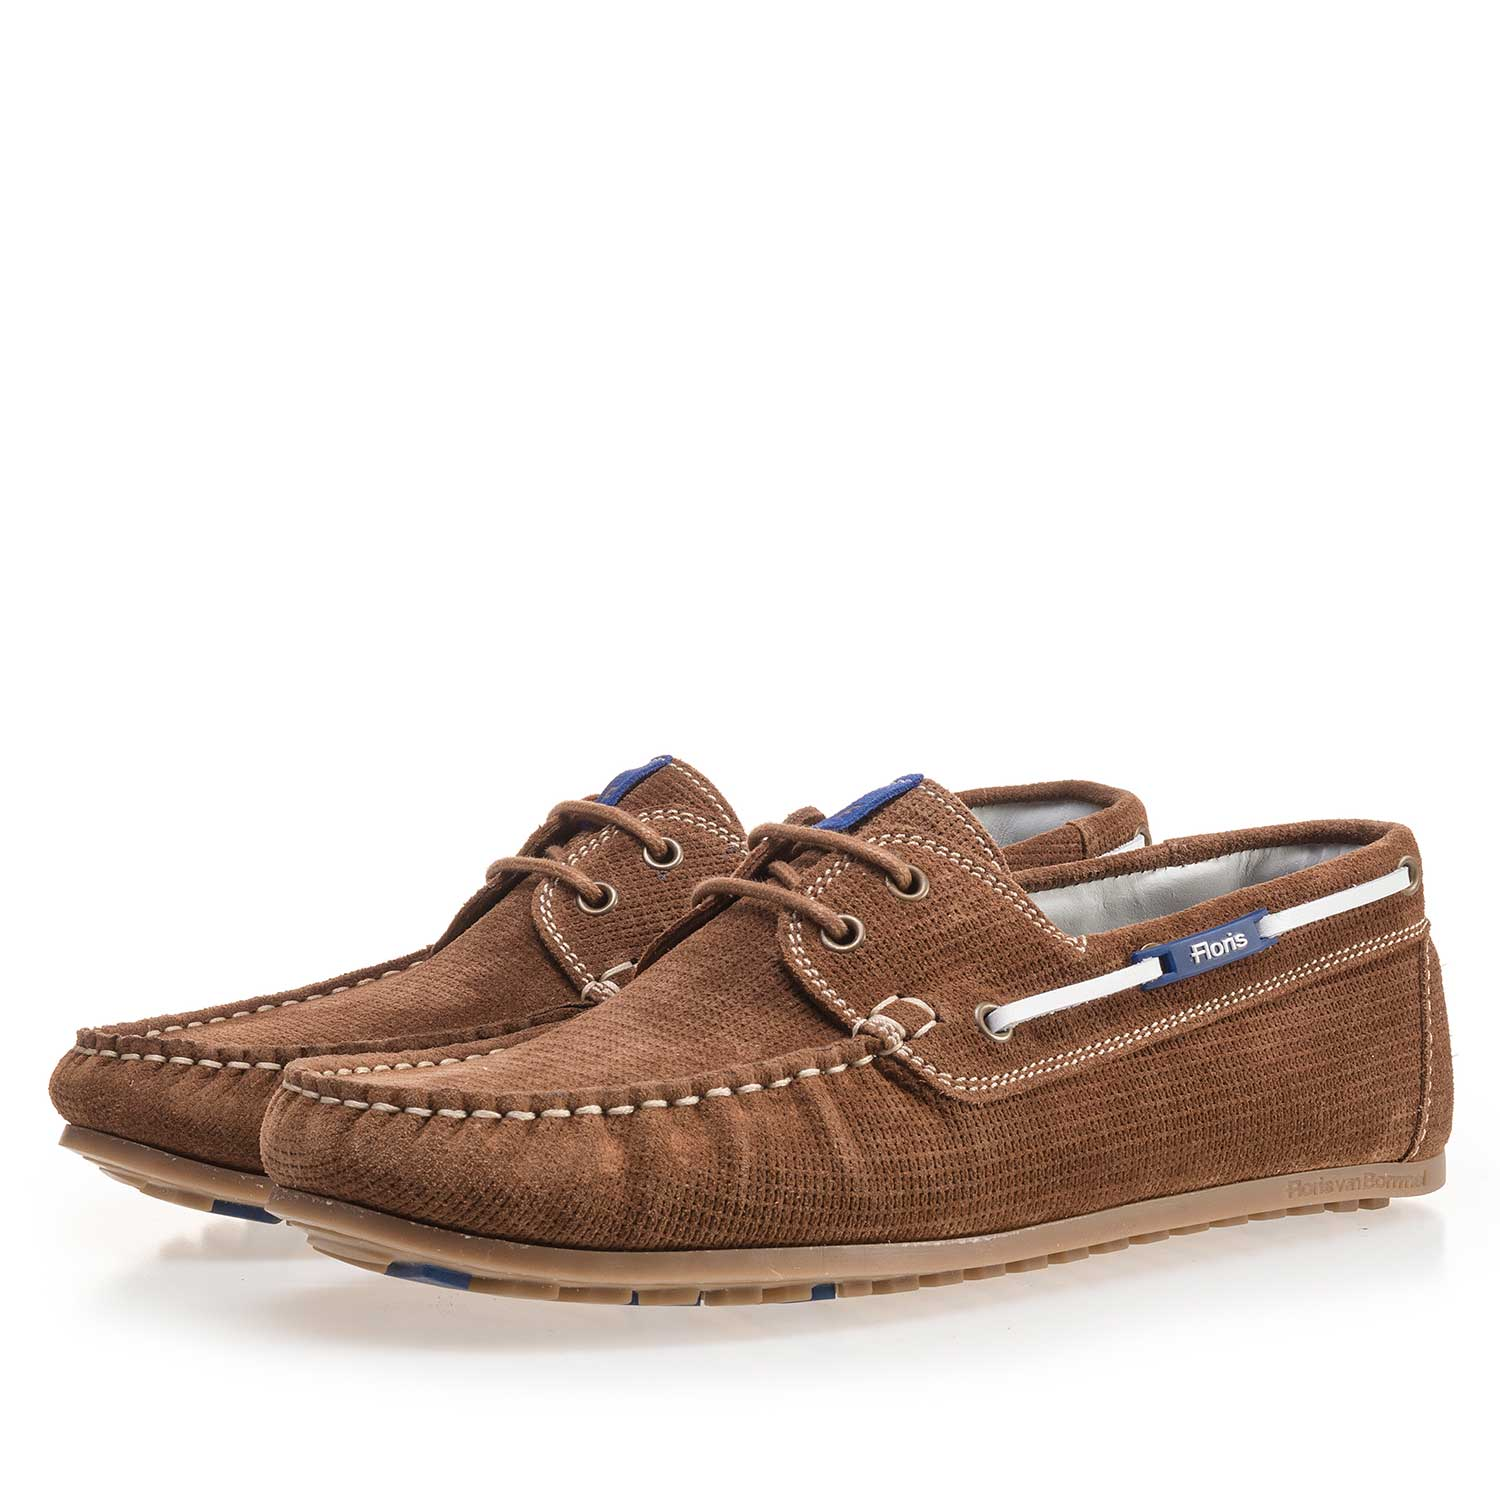 15035/02 - Brown, patterned suede leather boat shoe